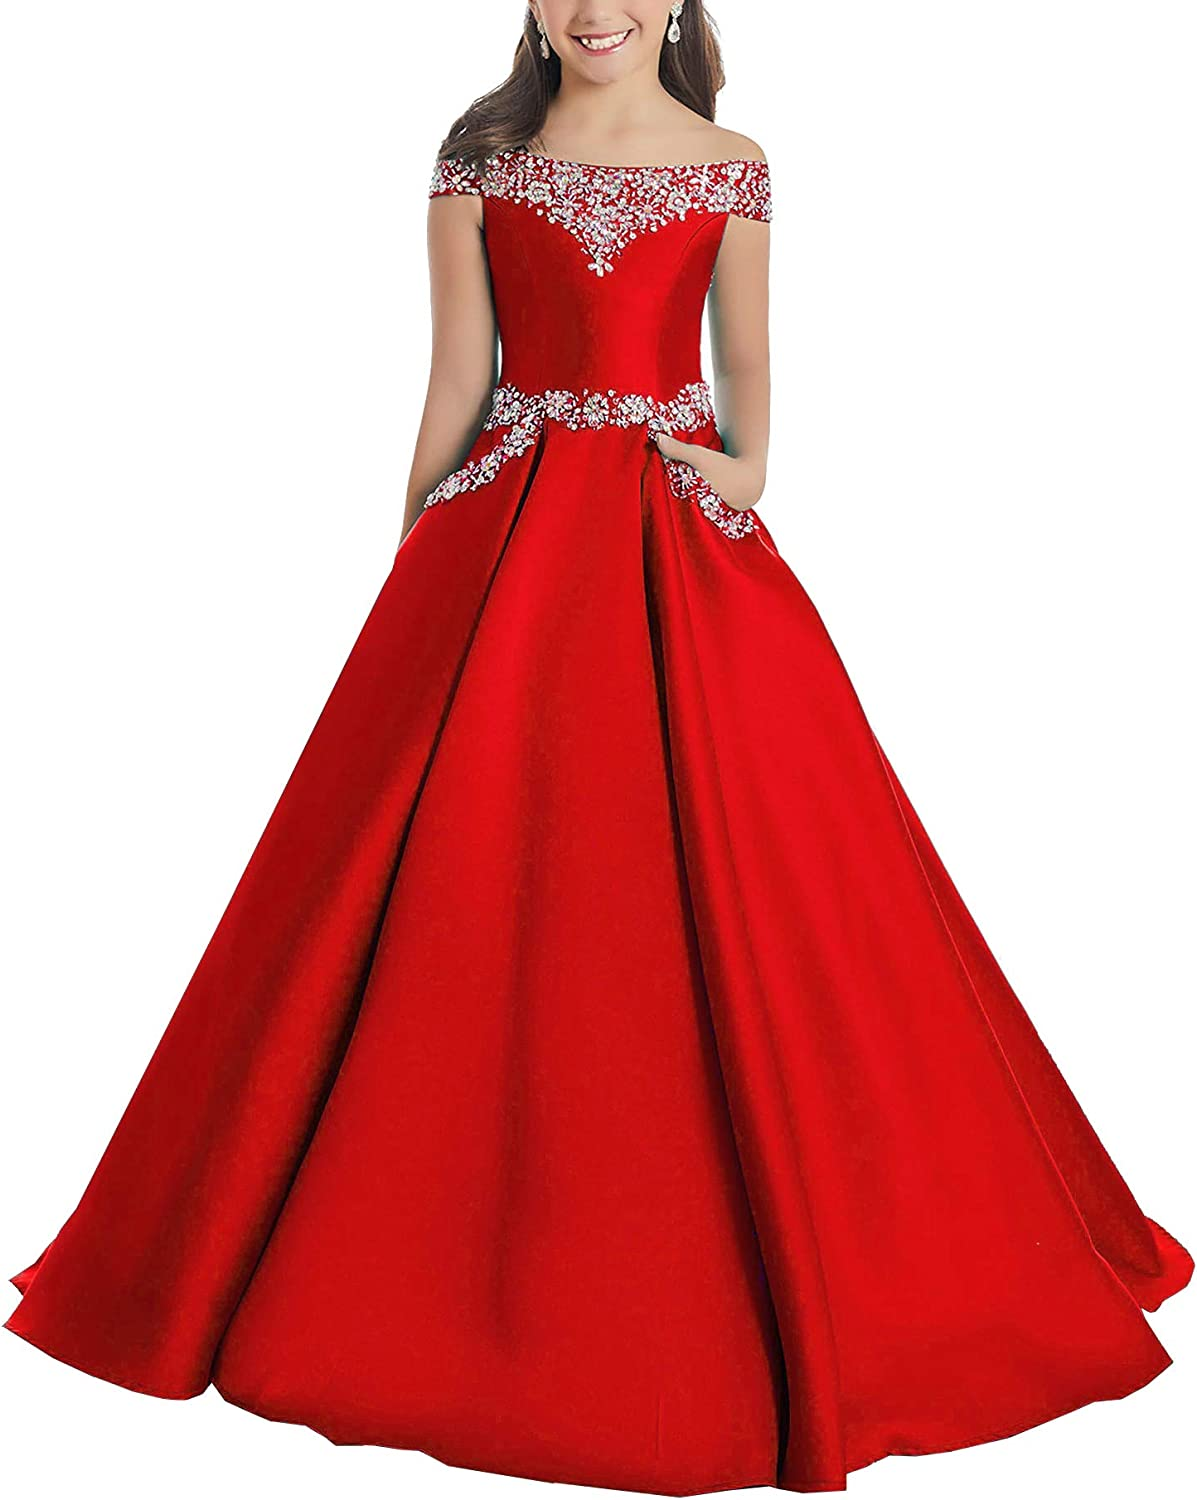 Junguan Girls' Off The Shoulder Pageant Dresses Long Princess Birthday Formal Party Ball Gowns Aline With Pockets Tf001